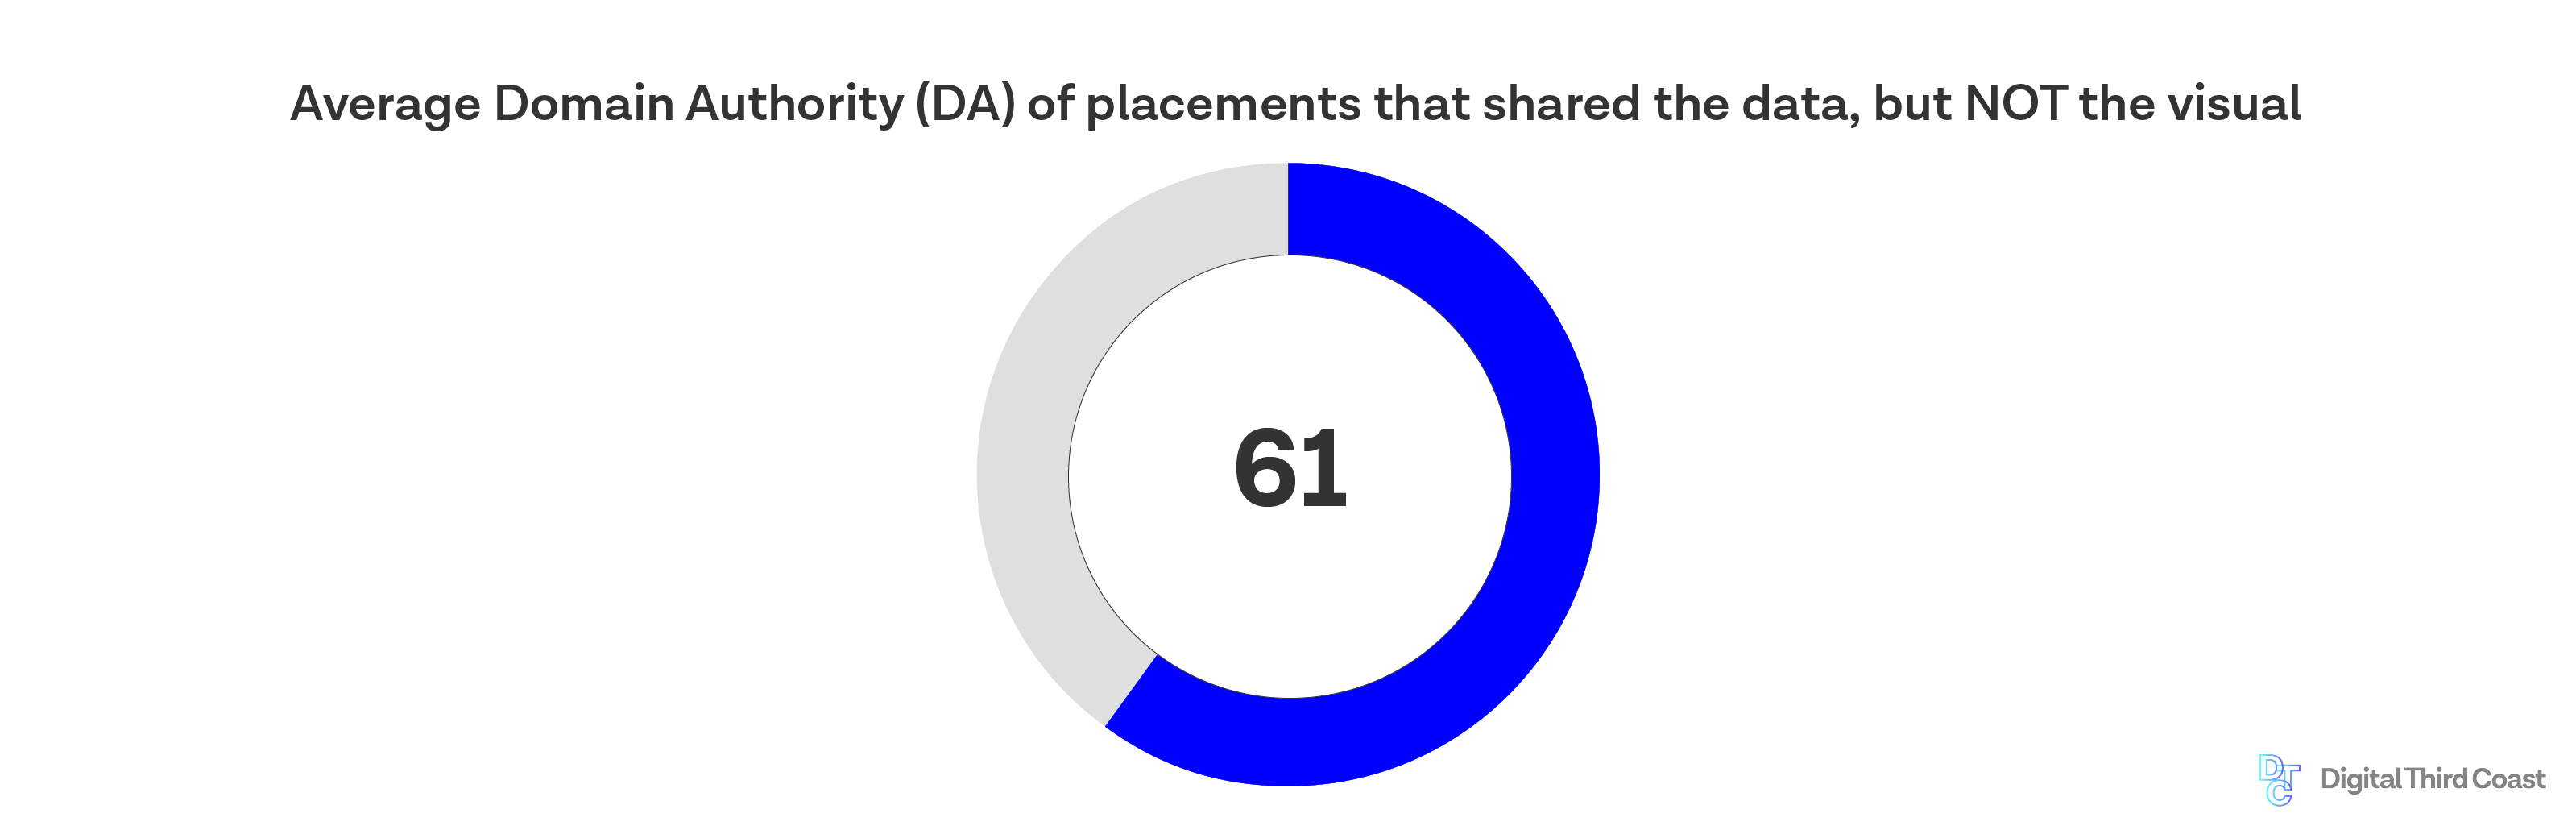 DA 61 is the average domain authority of digital publications that only share the data, not the graphic.